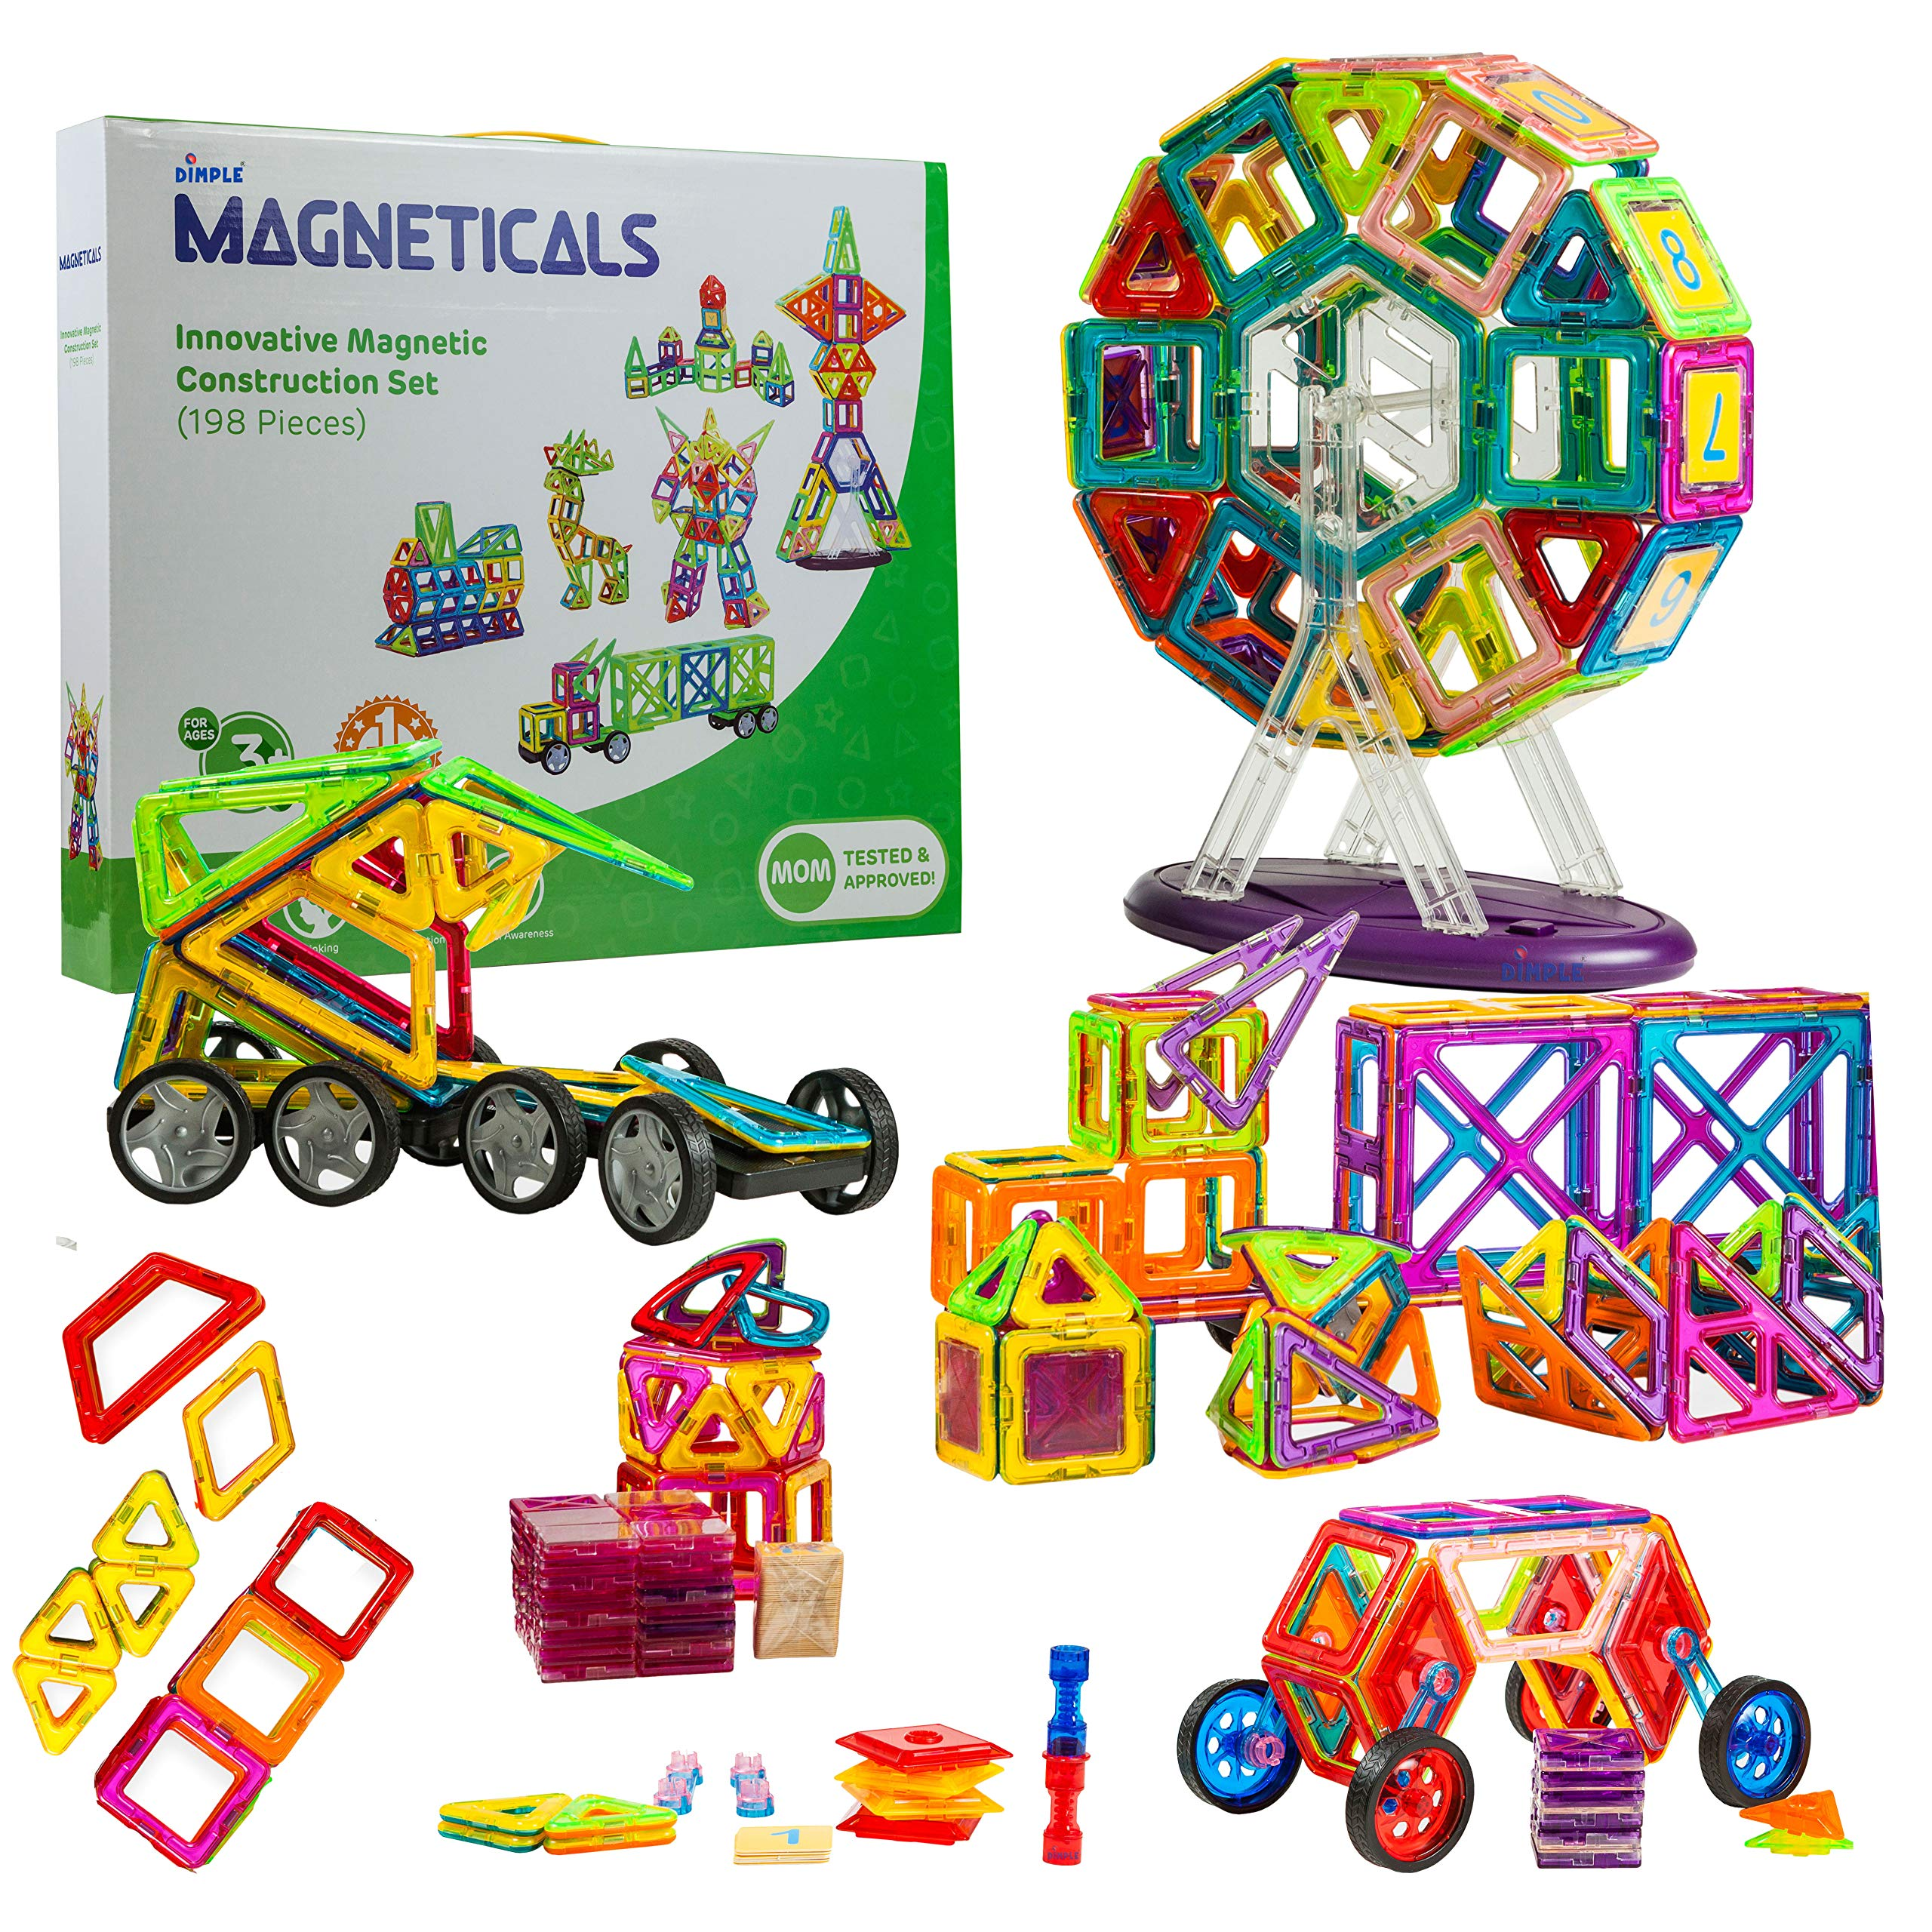 Magneticals 198 Pieces Creative Magnetic Building Blocks Set, 3D Building Construction Tile Set, STEM Educational Toy, Improve Hand-Eye Coordination, Top-Rated Toy for Girls and Boys fun for all ages by Dimple